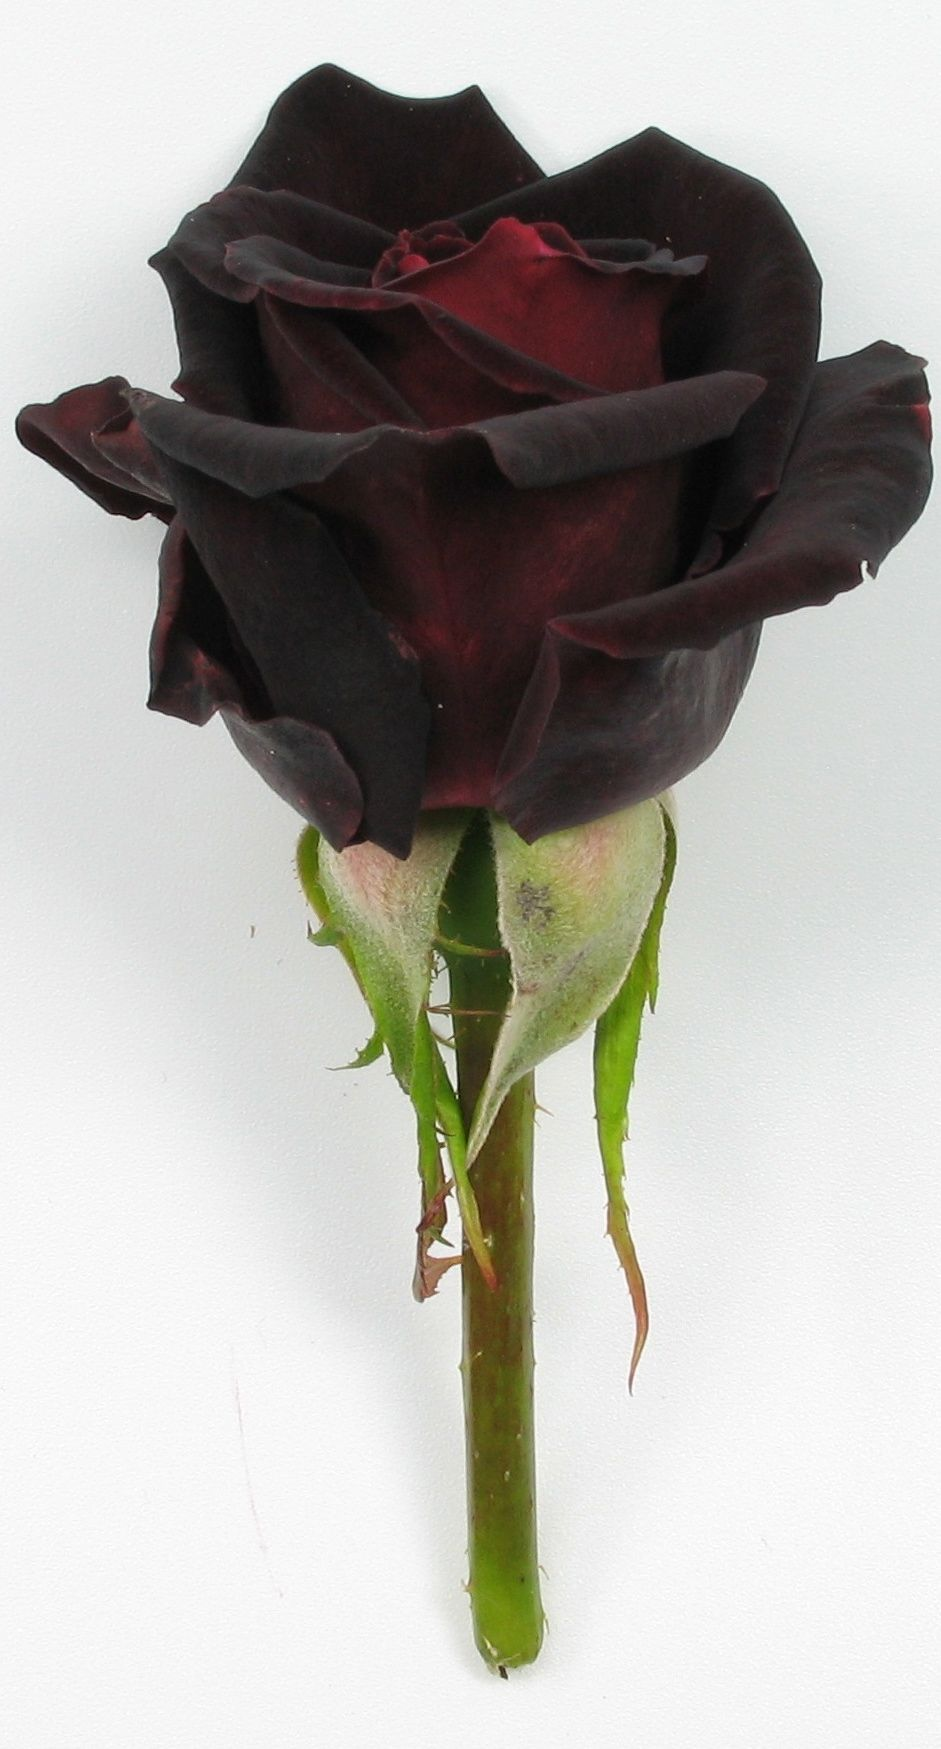 the black rose the very nature of black the 200 pcsbag rose seeds perennial plant flower seeds rare sundry rose petals for home garden bonsai pot black rose easy to grow buycottarizona